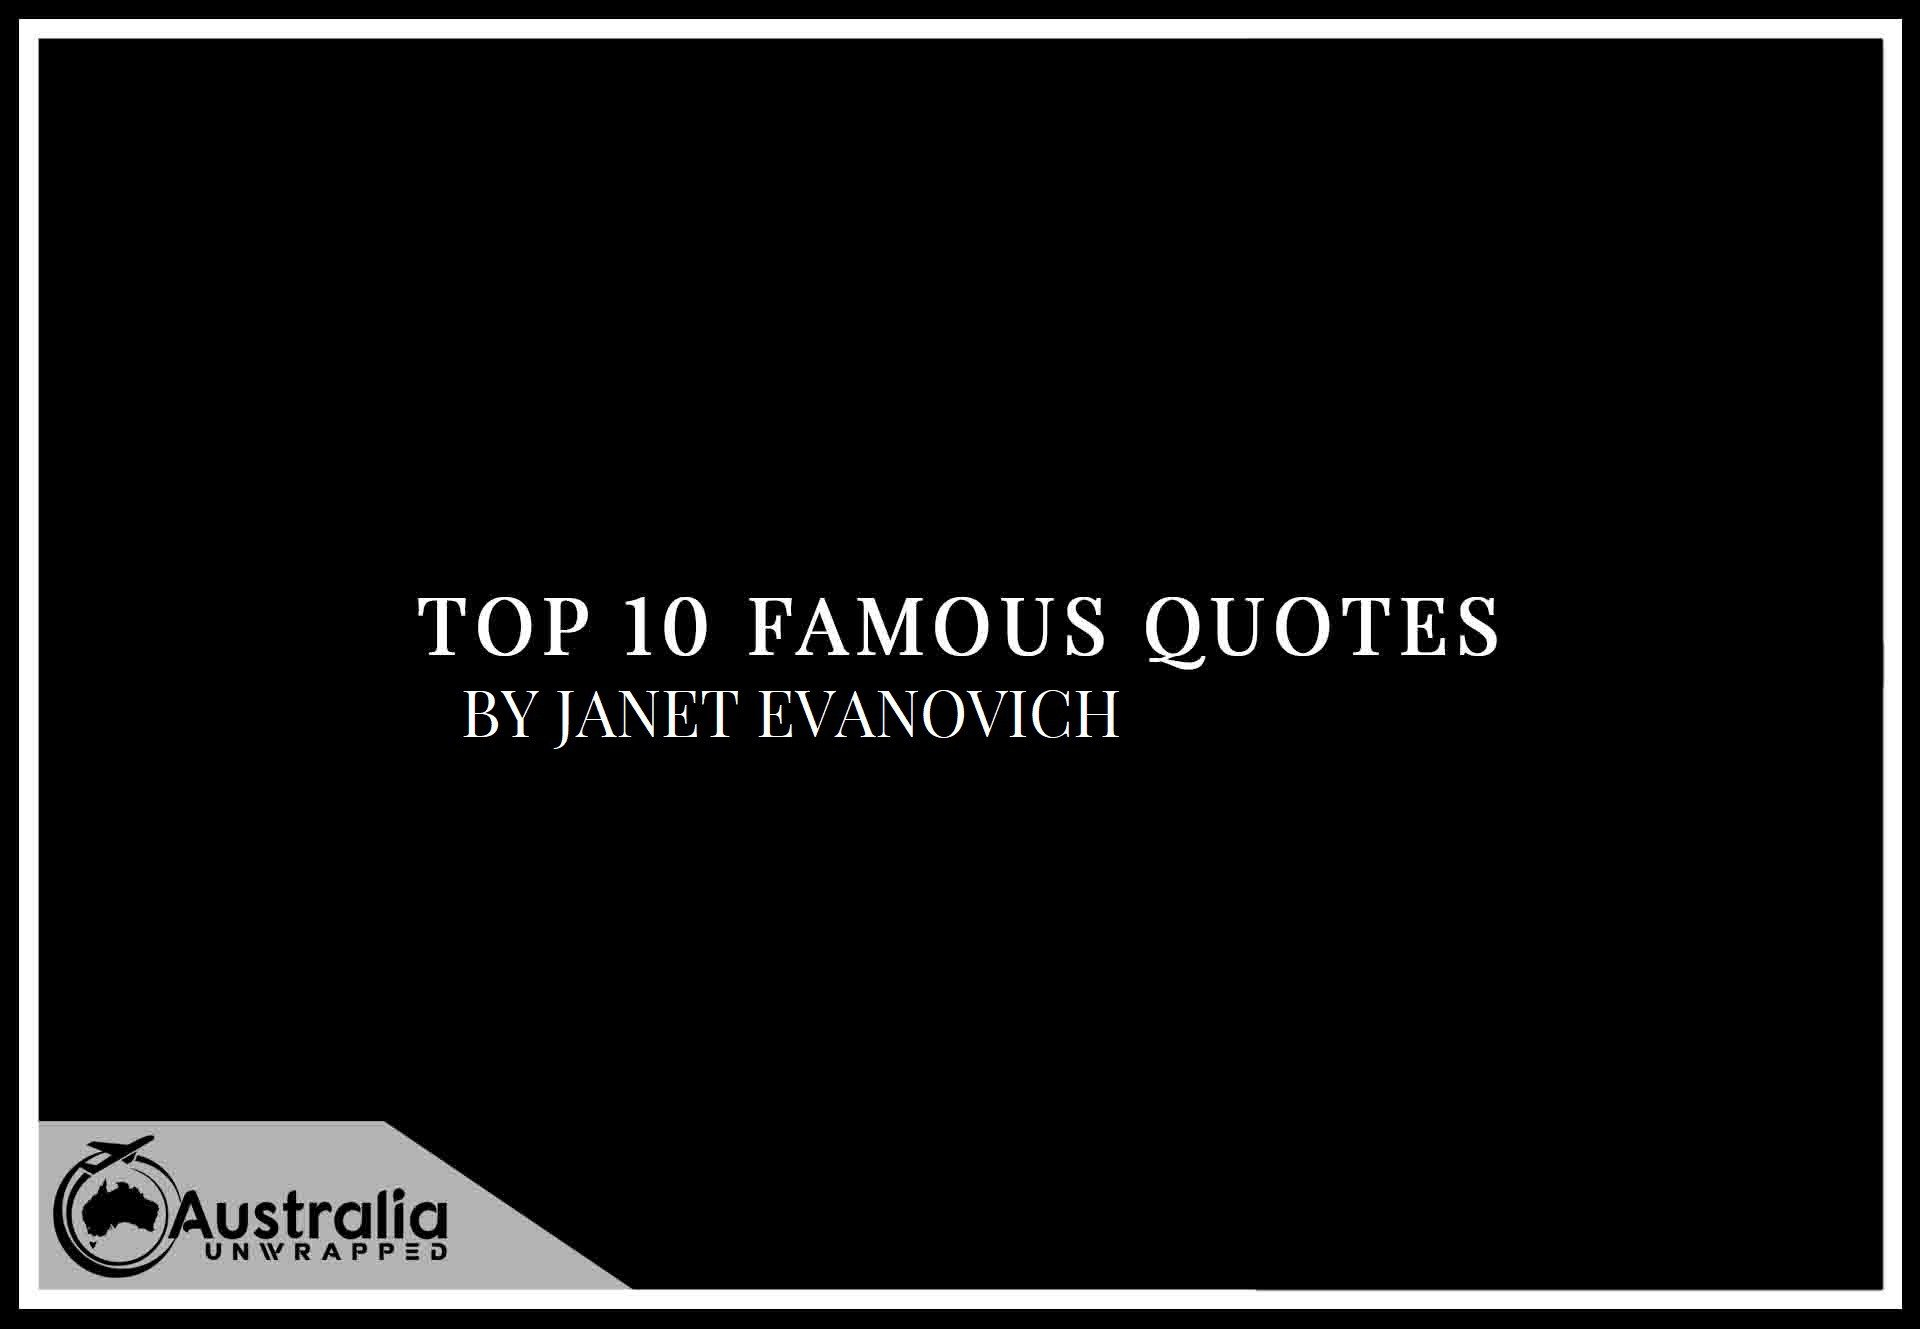 Top 10 Famous Quotes by Author Janet Evanovich